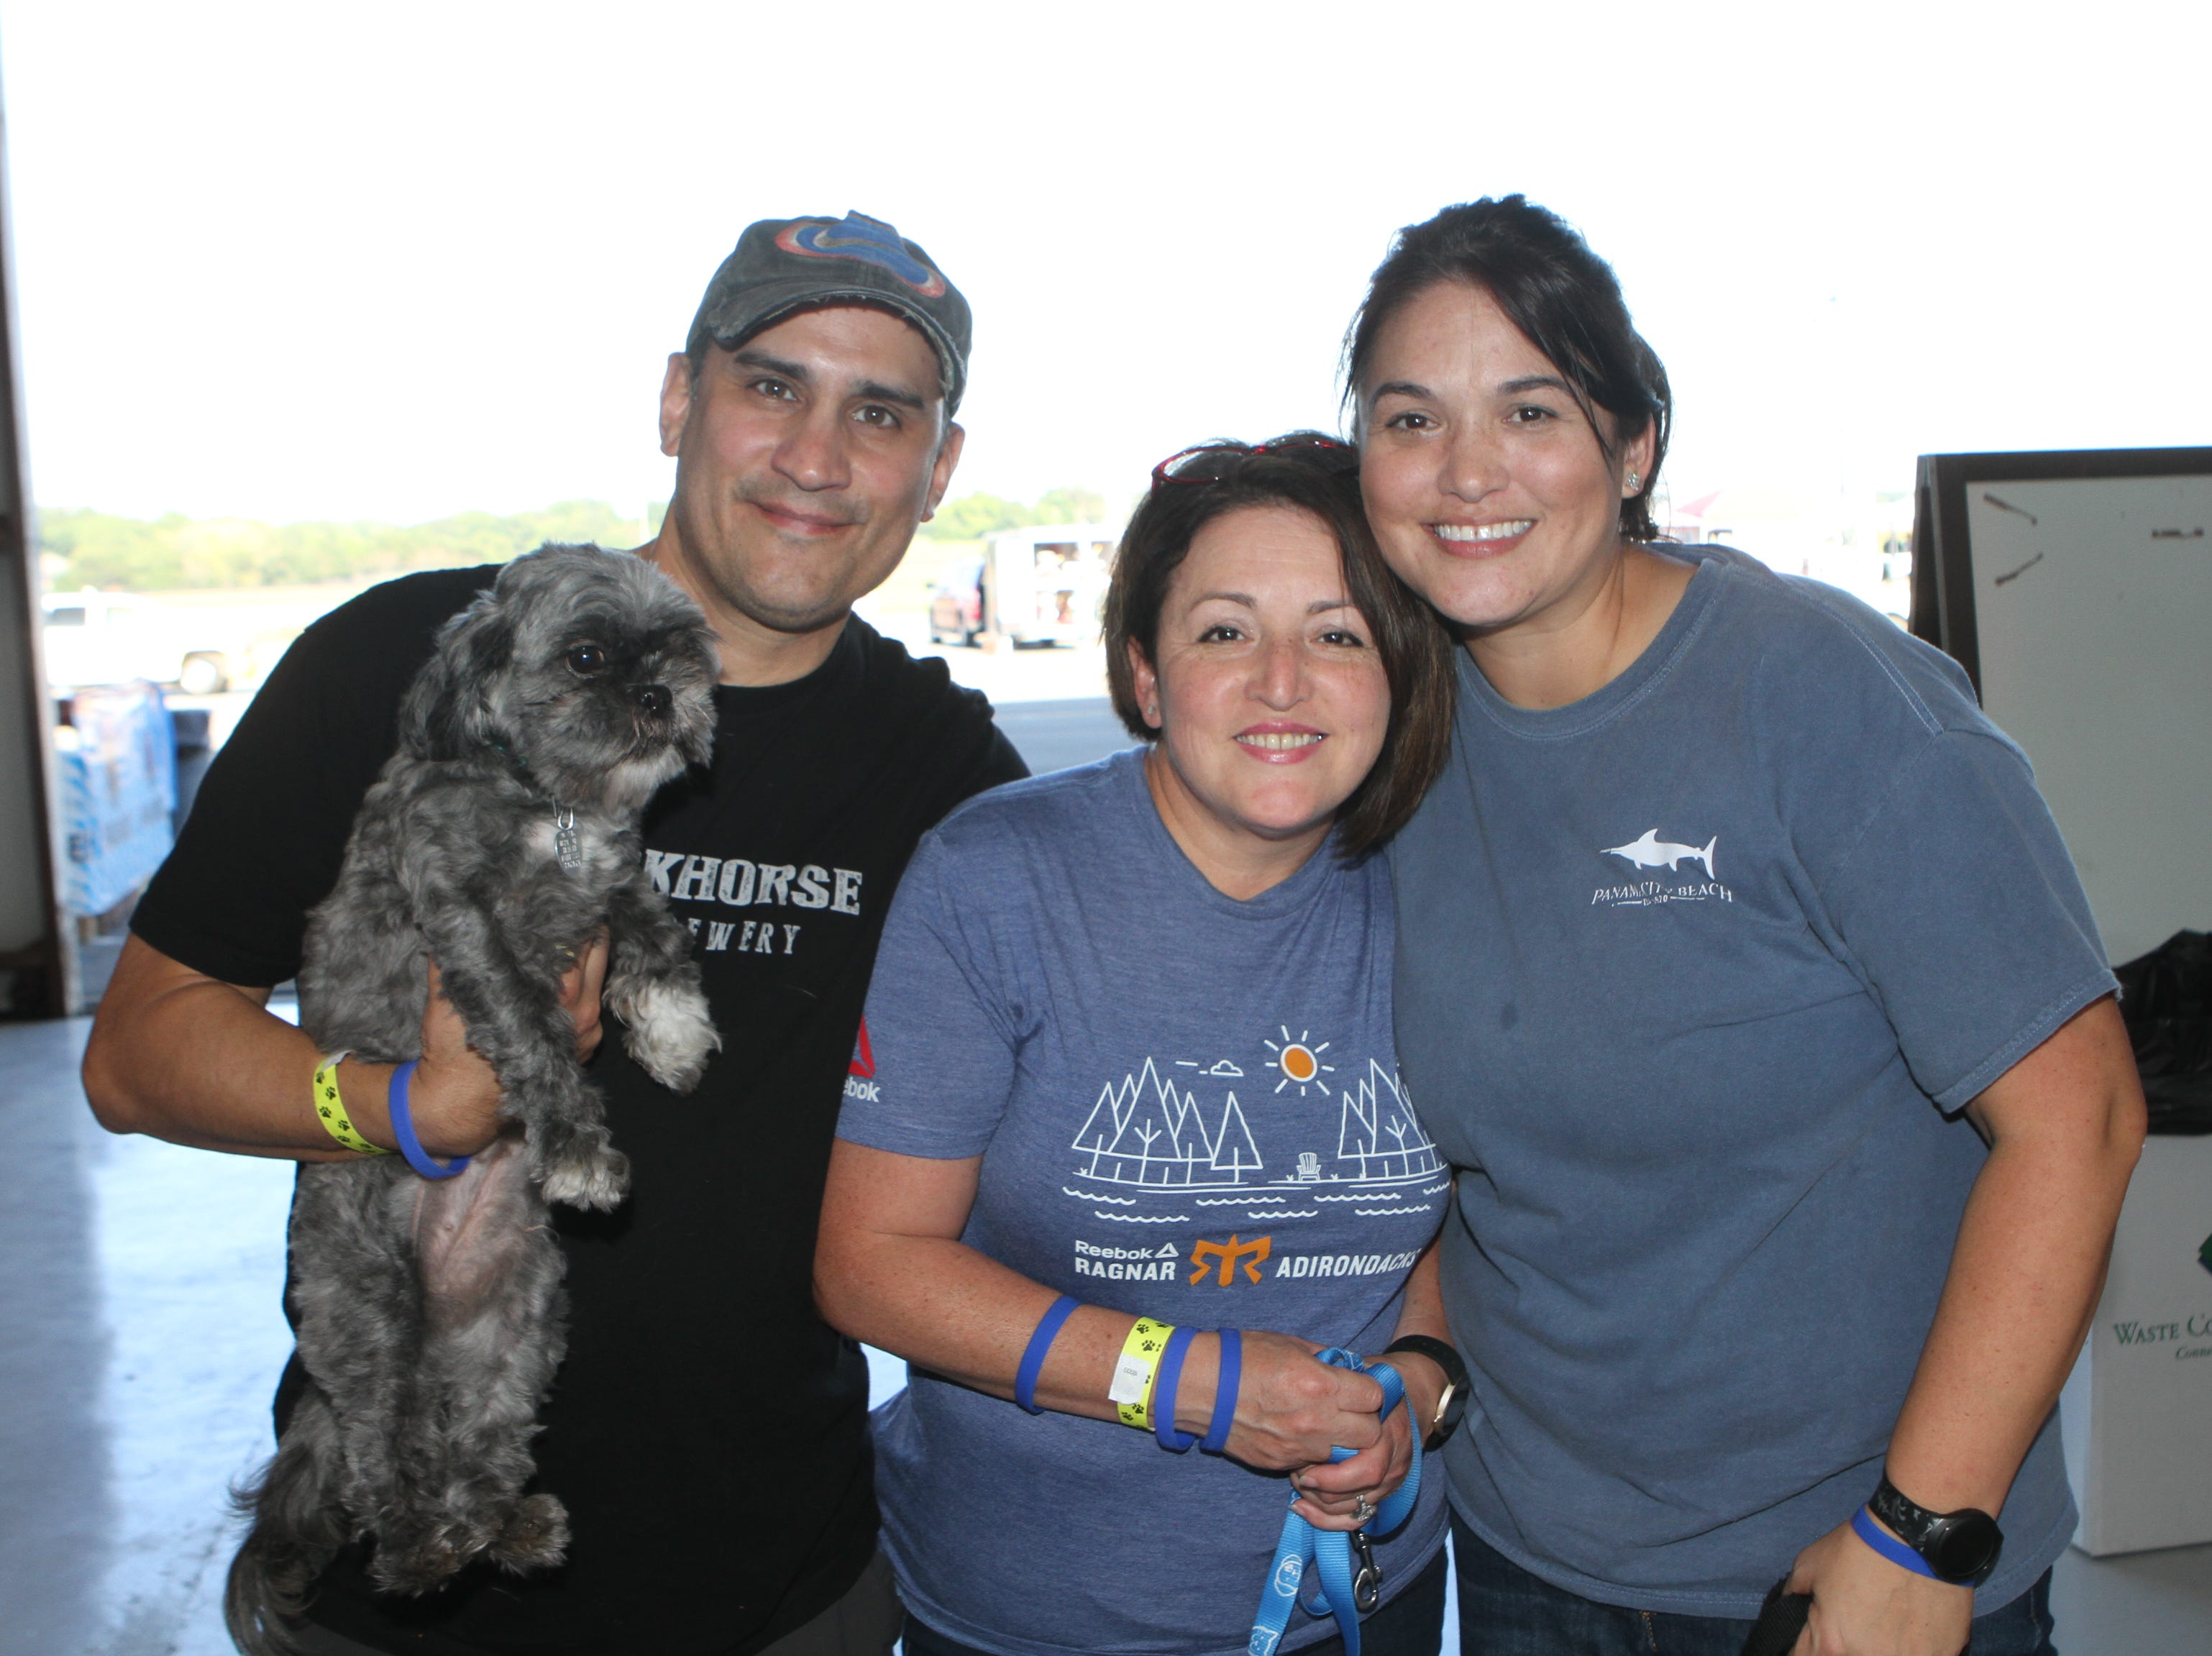 Francisco and Maria Vaszuez and Kim Thompson at Wags and Wings, a family fun and Oktoberfest event to benefit the Humane Society of Clarksville-Montgomery County, Sept. 29, 2018.